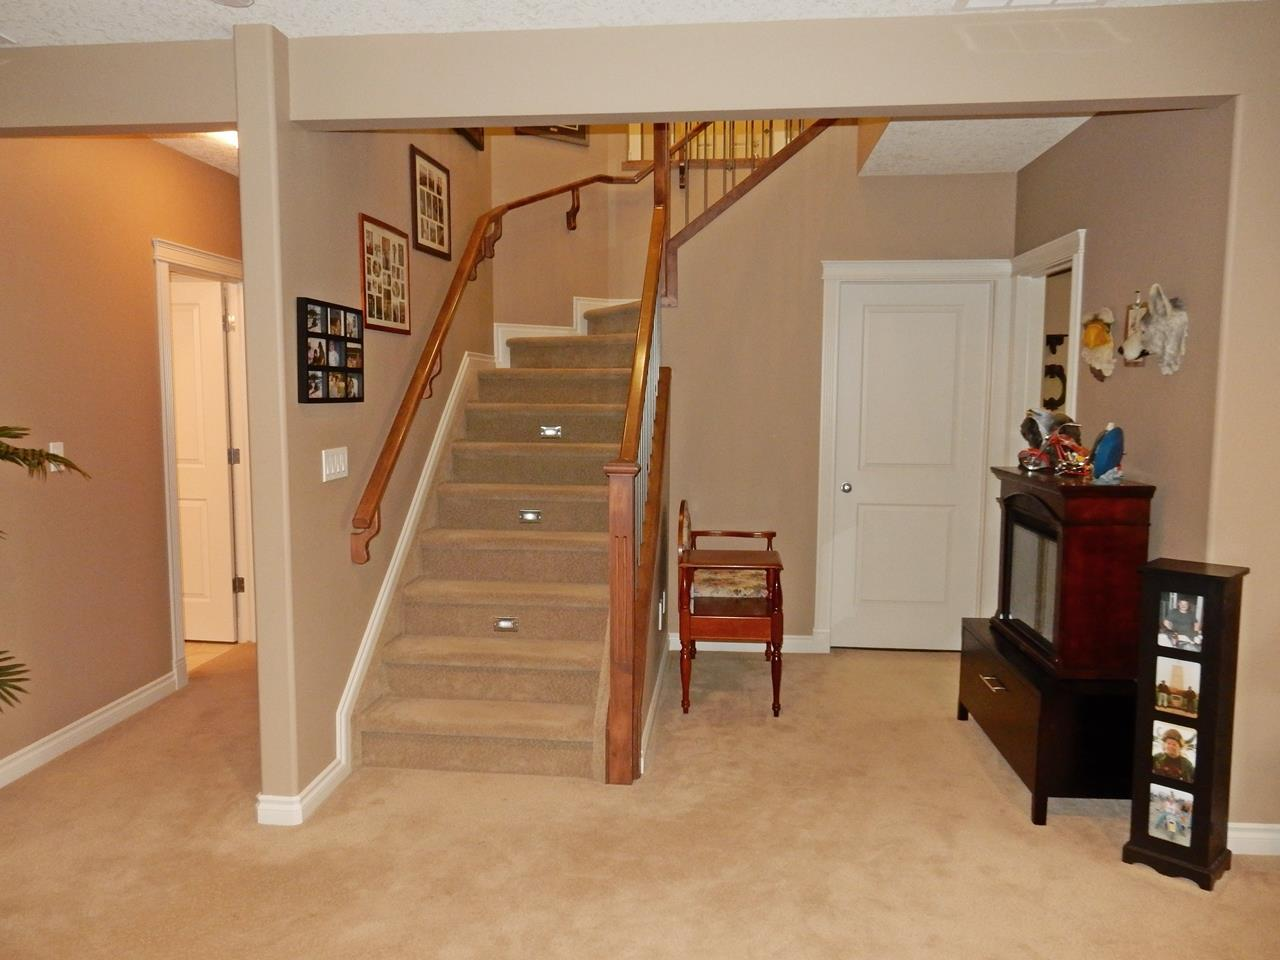 Photo 25: 3725 47 Street: Gibbons House for sale : MLS® # E4064715